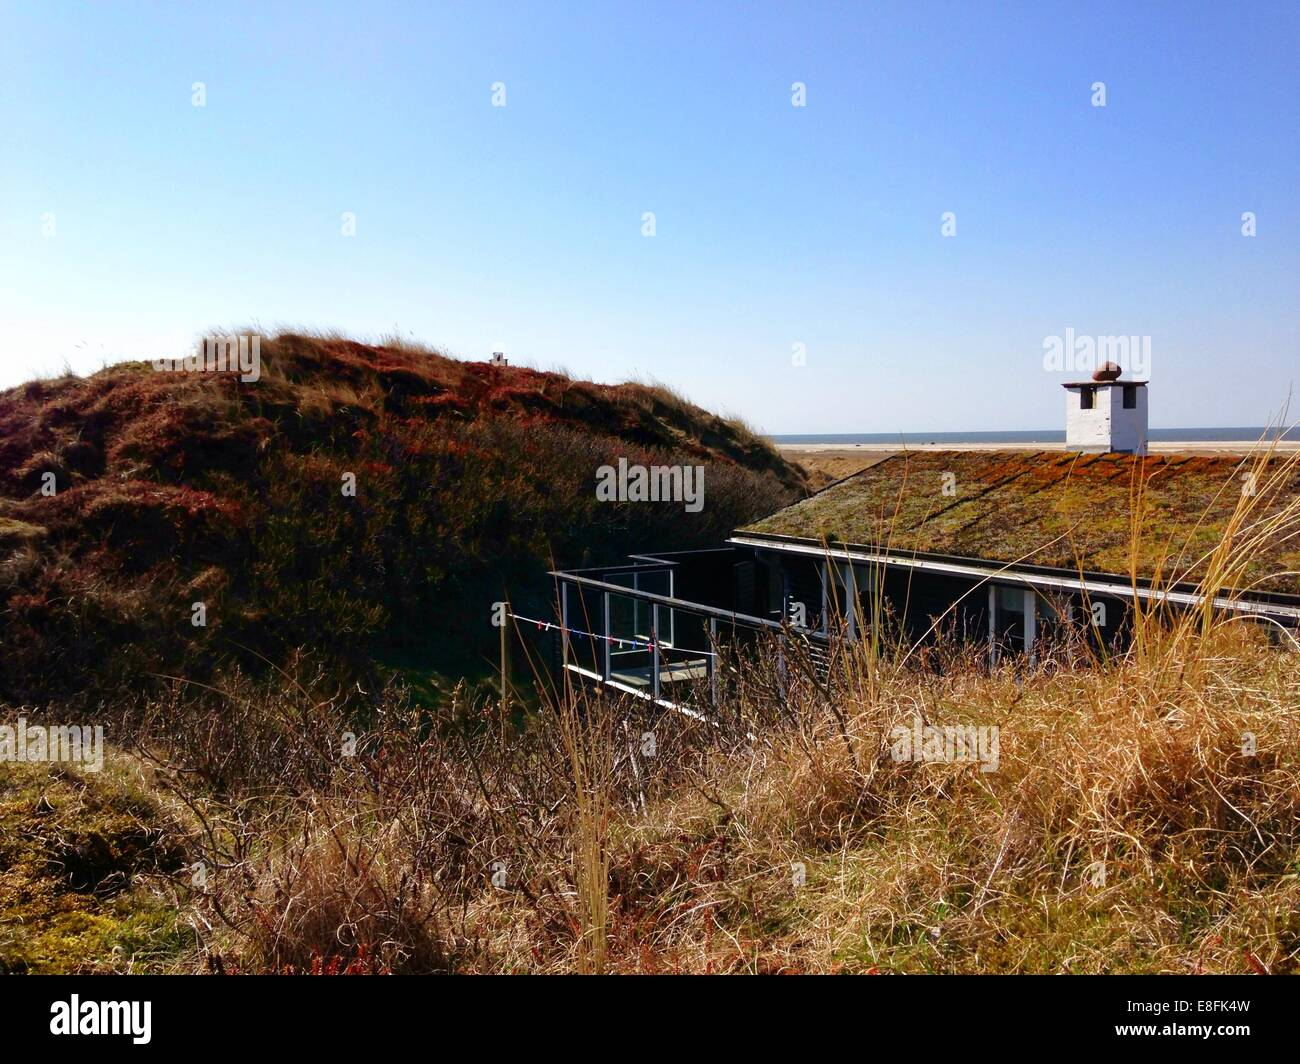 Elevated view of Traditional summerhouse, Fanoe, Denmark - Stock Image